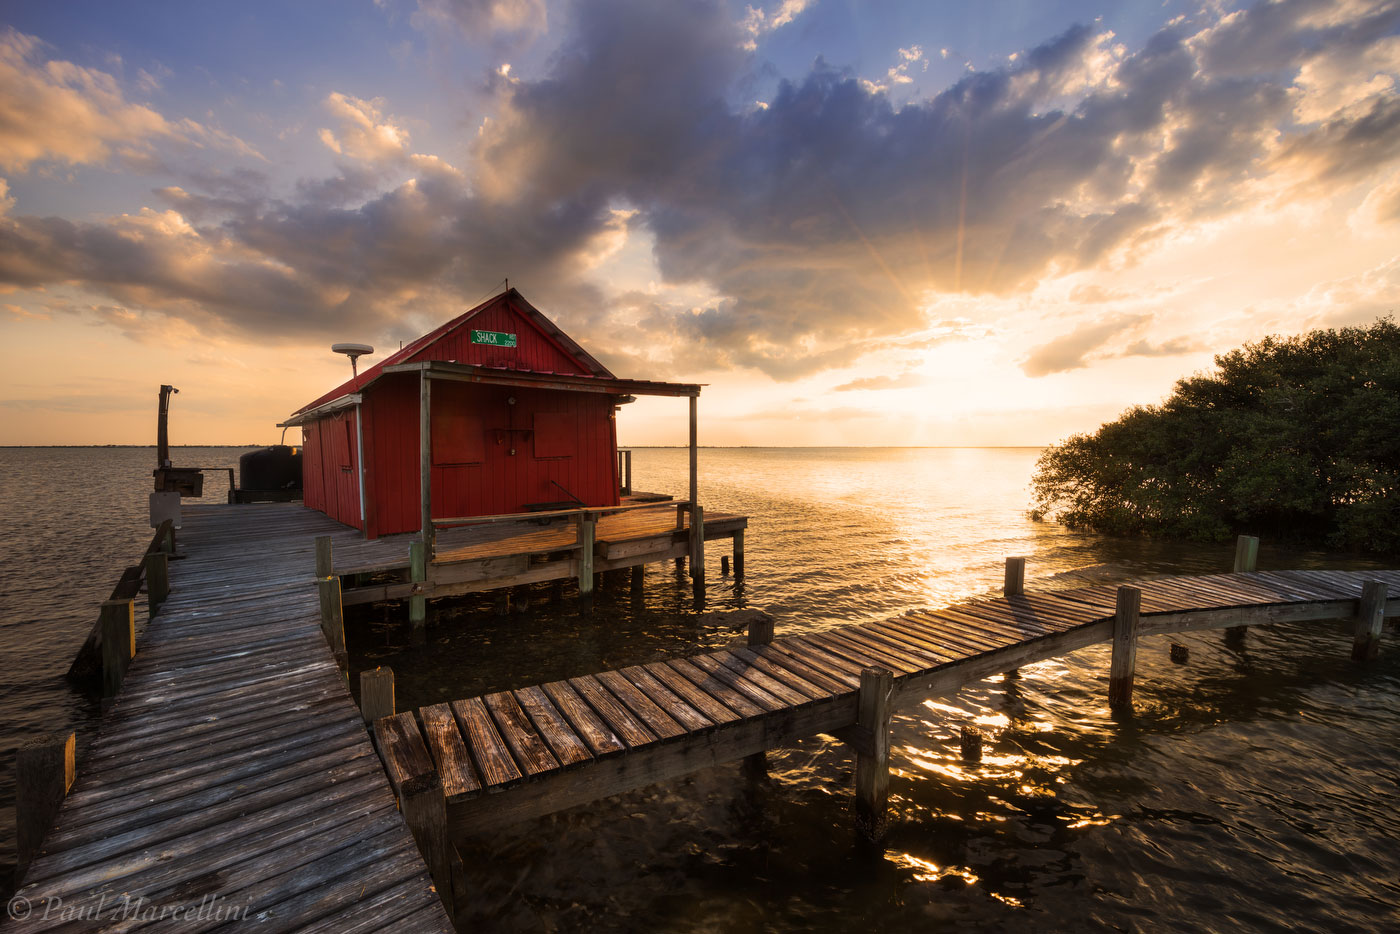 red shack, pine island sound, florida, southwest, stilts, sunset, nature, photography, photo